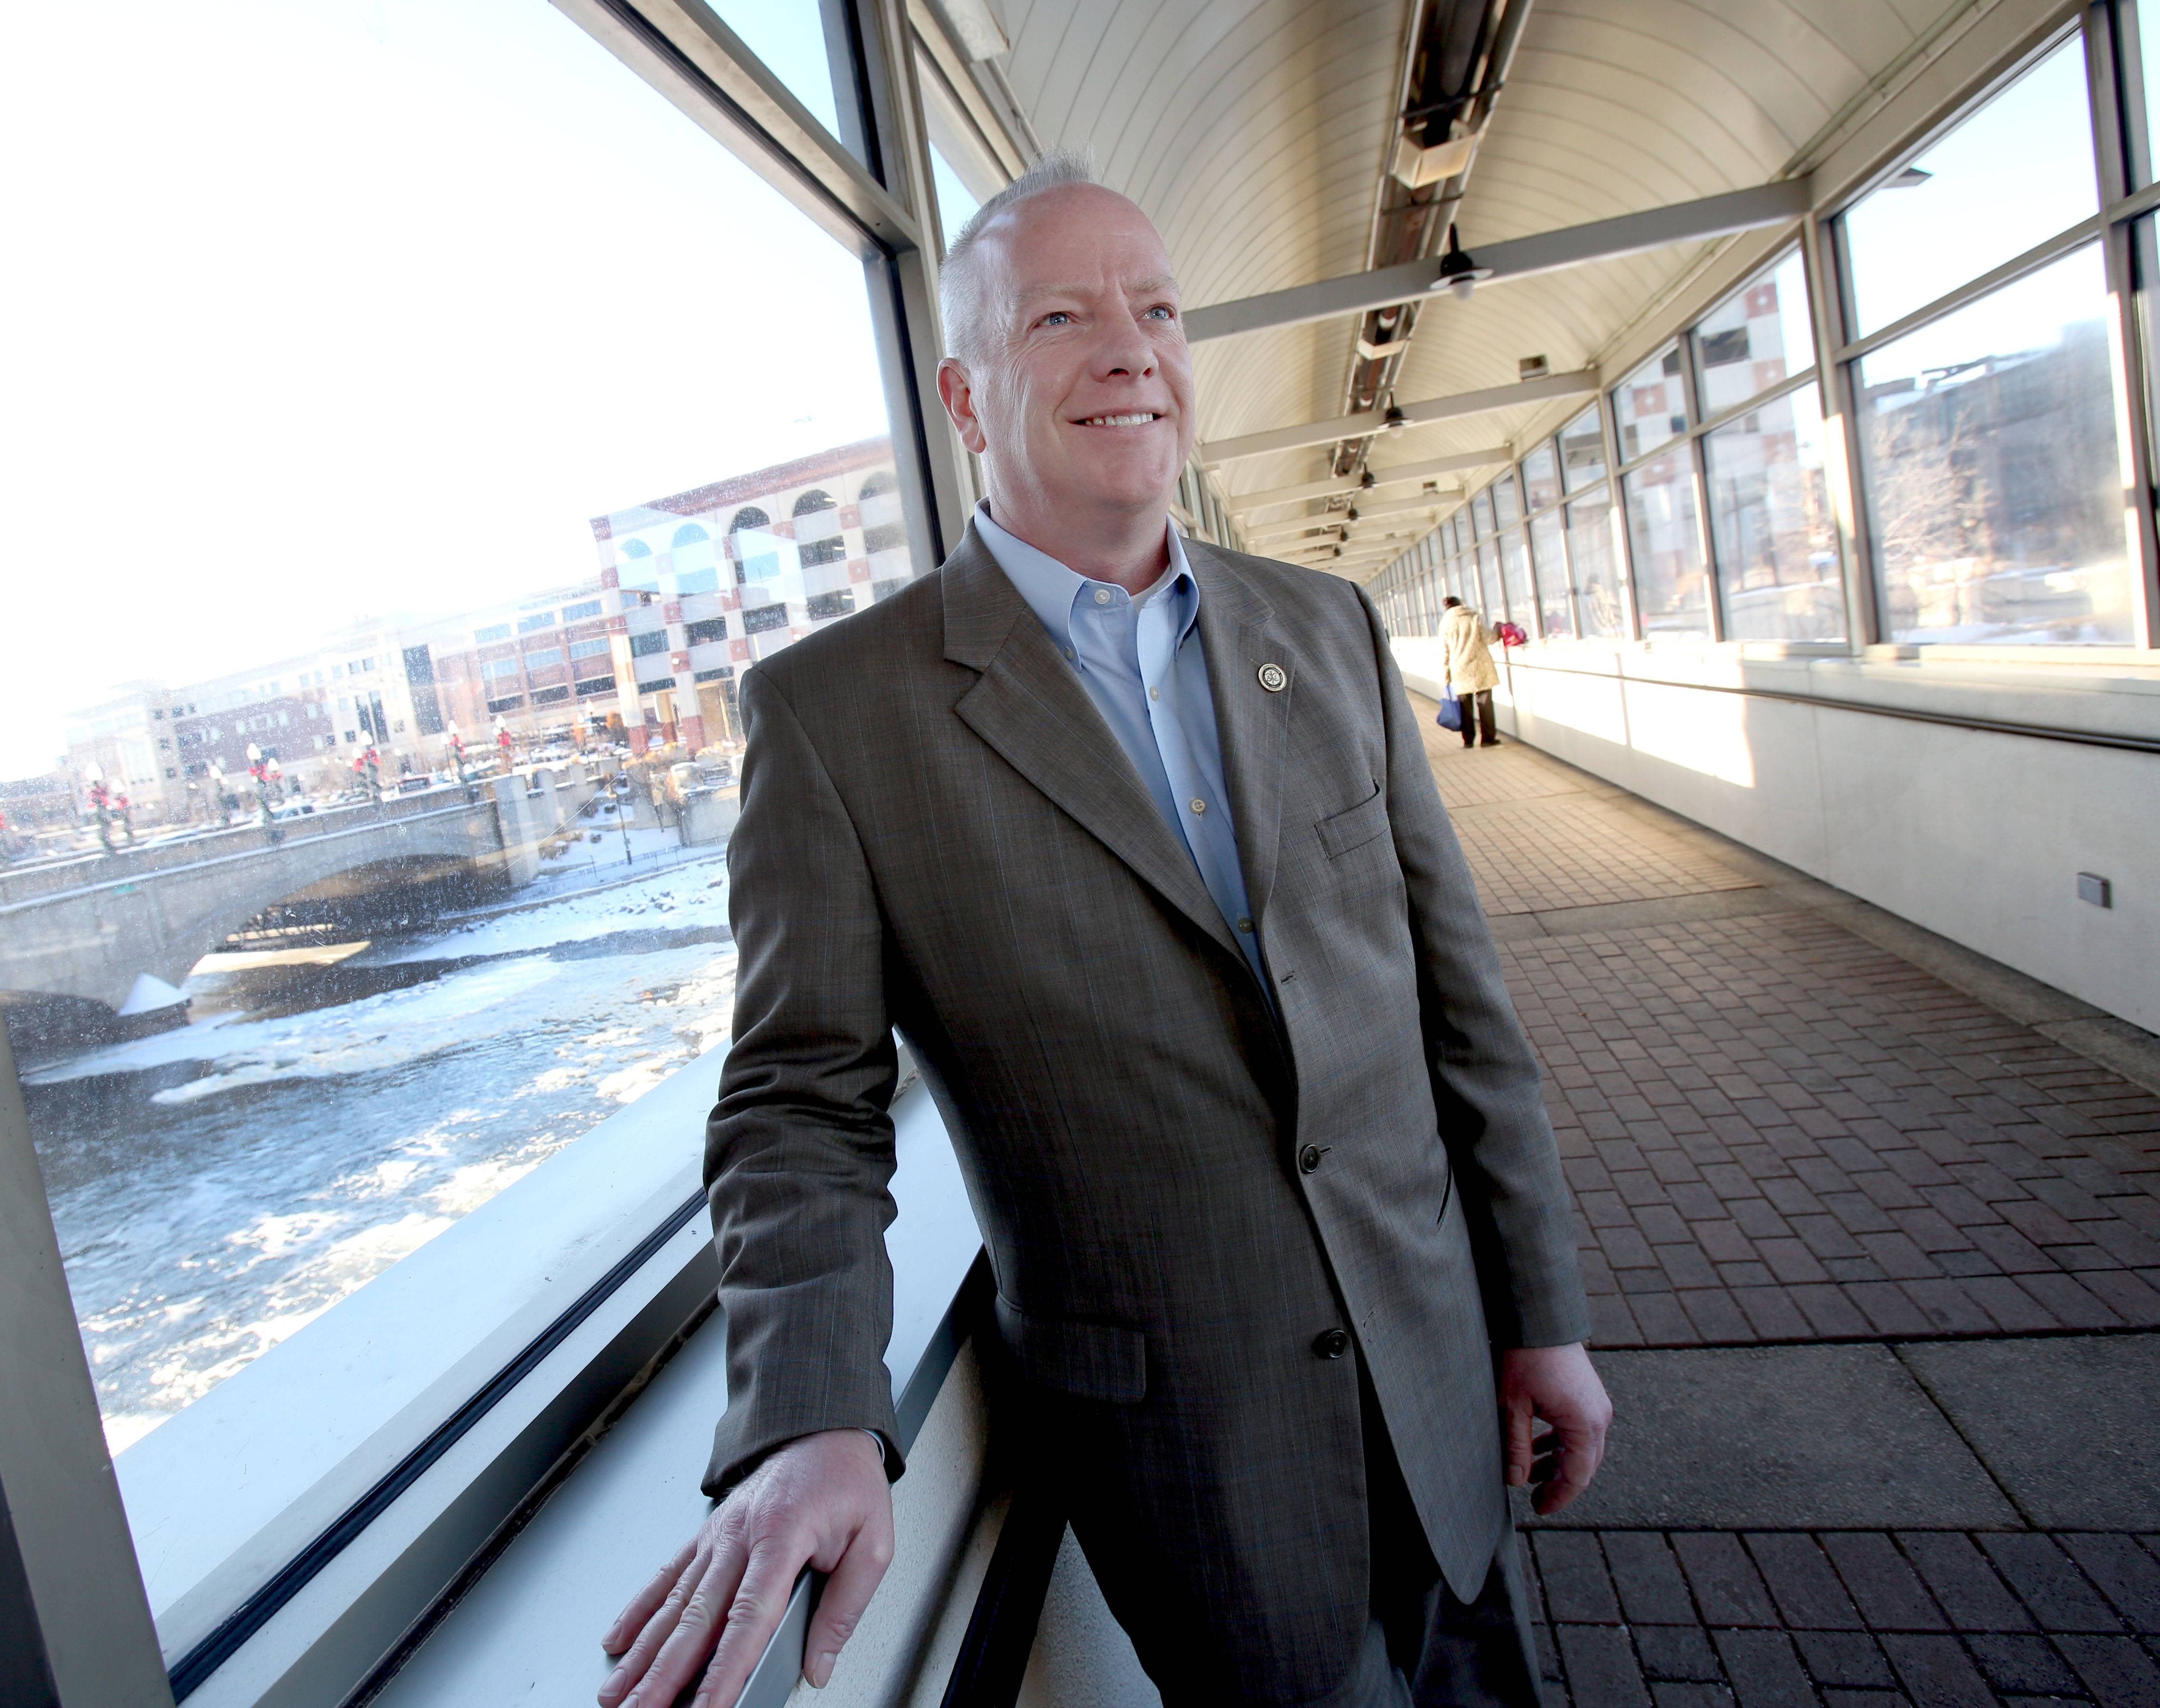 Joe Henning, head of the Aurora Regional Chamber of Commerce since 2005, stands in the walkway that goes over the river in the heart of the downtown of his beloved city.